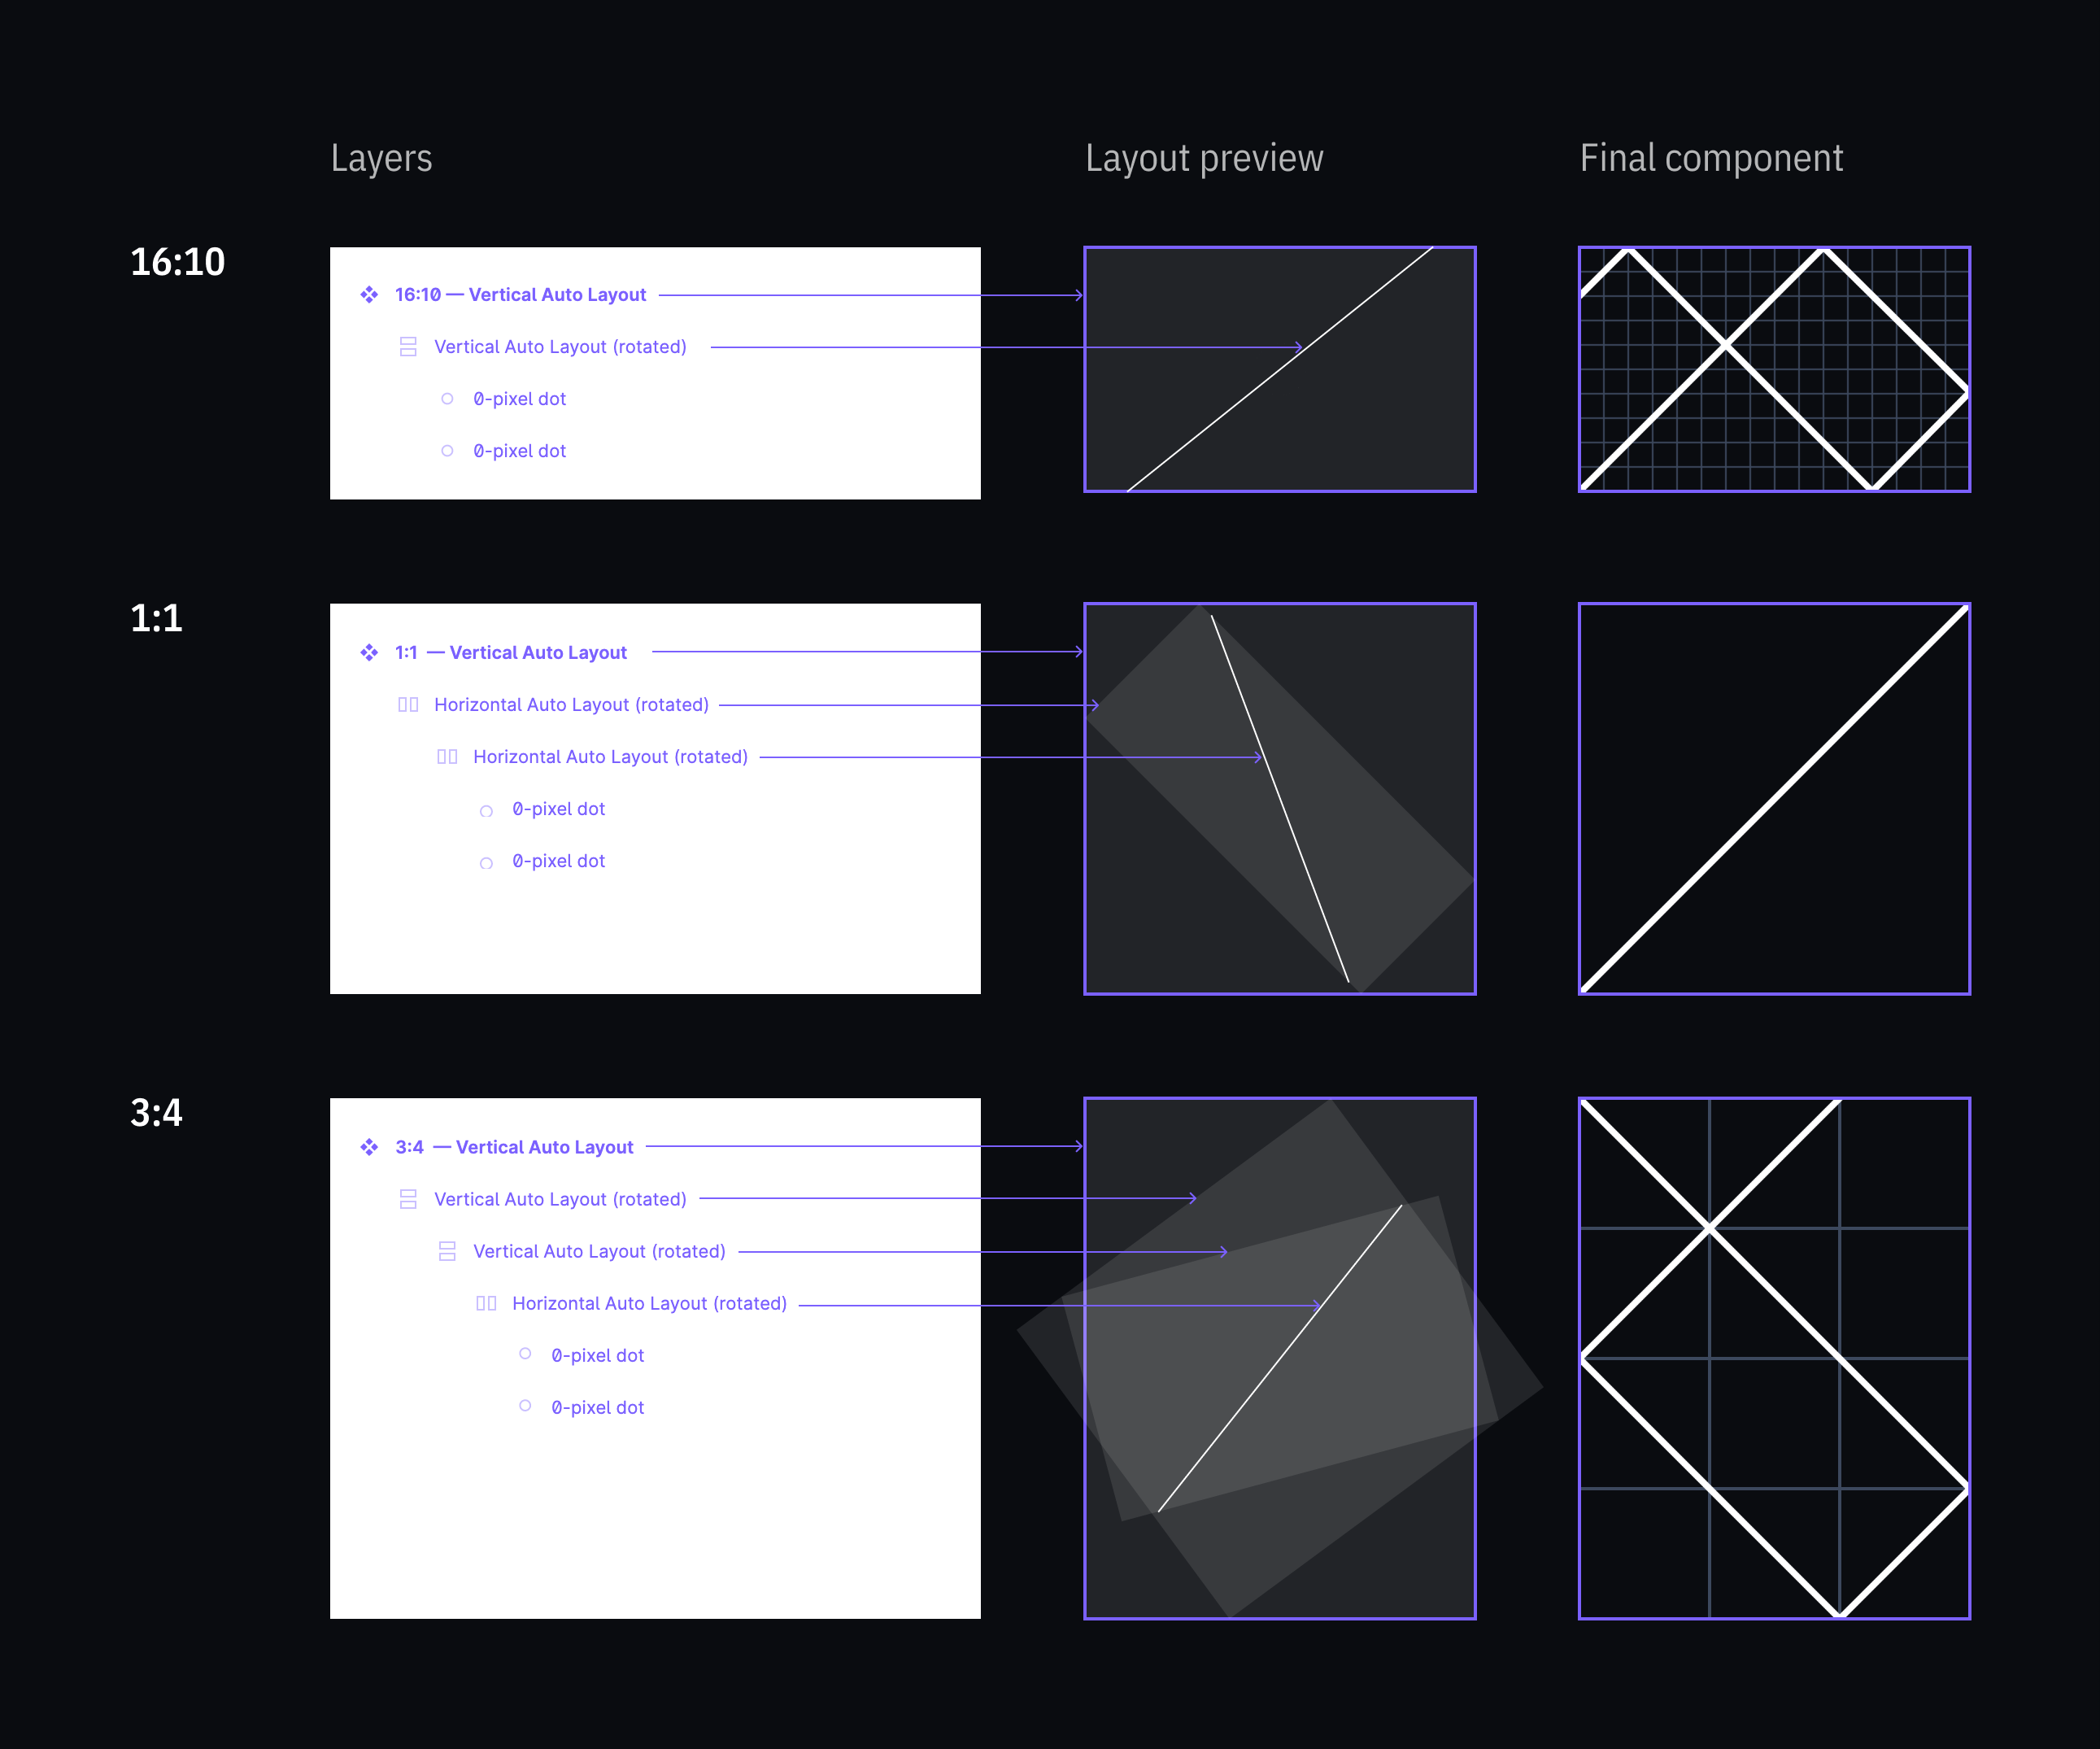 Component layers